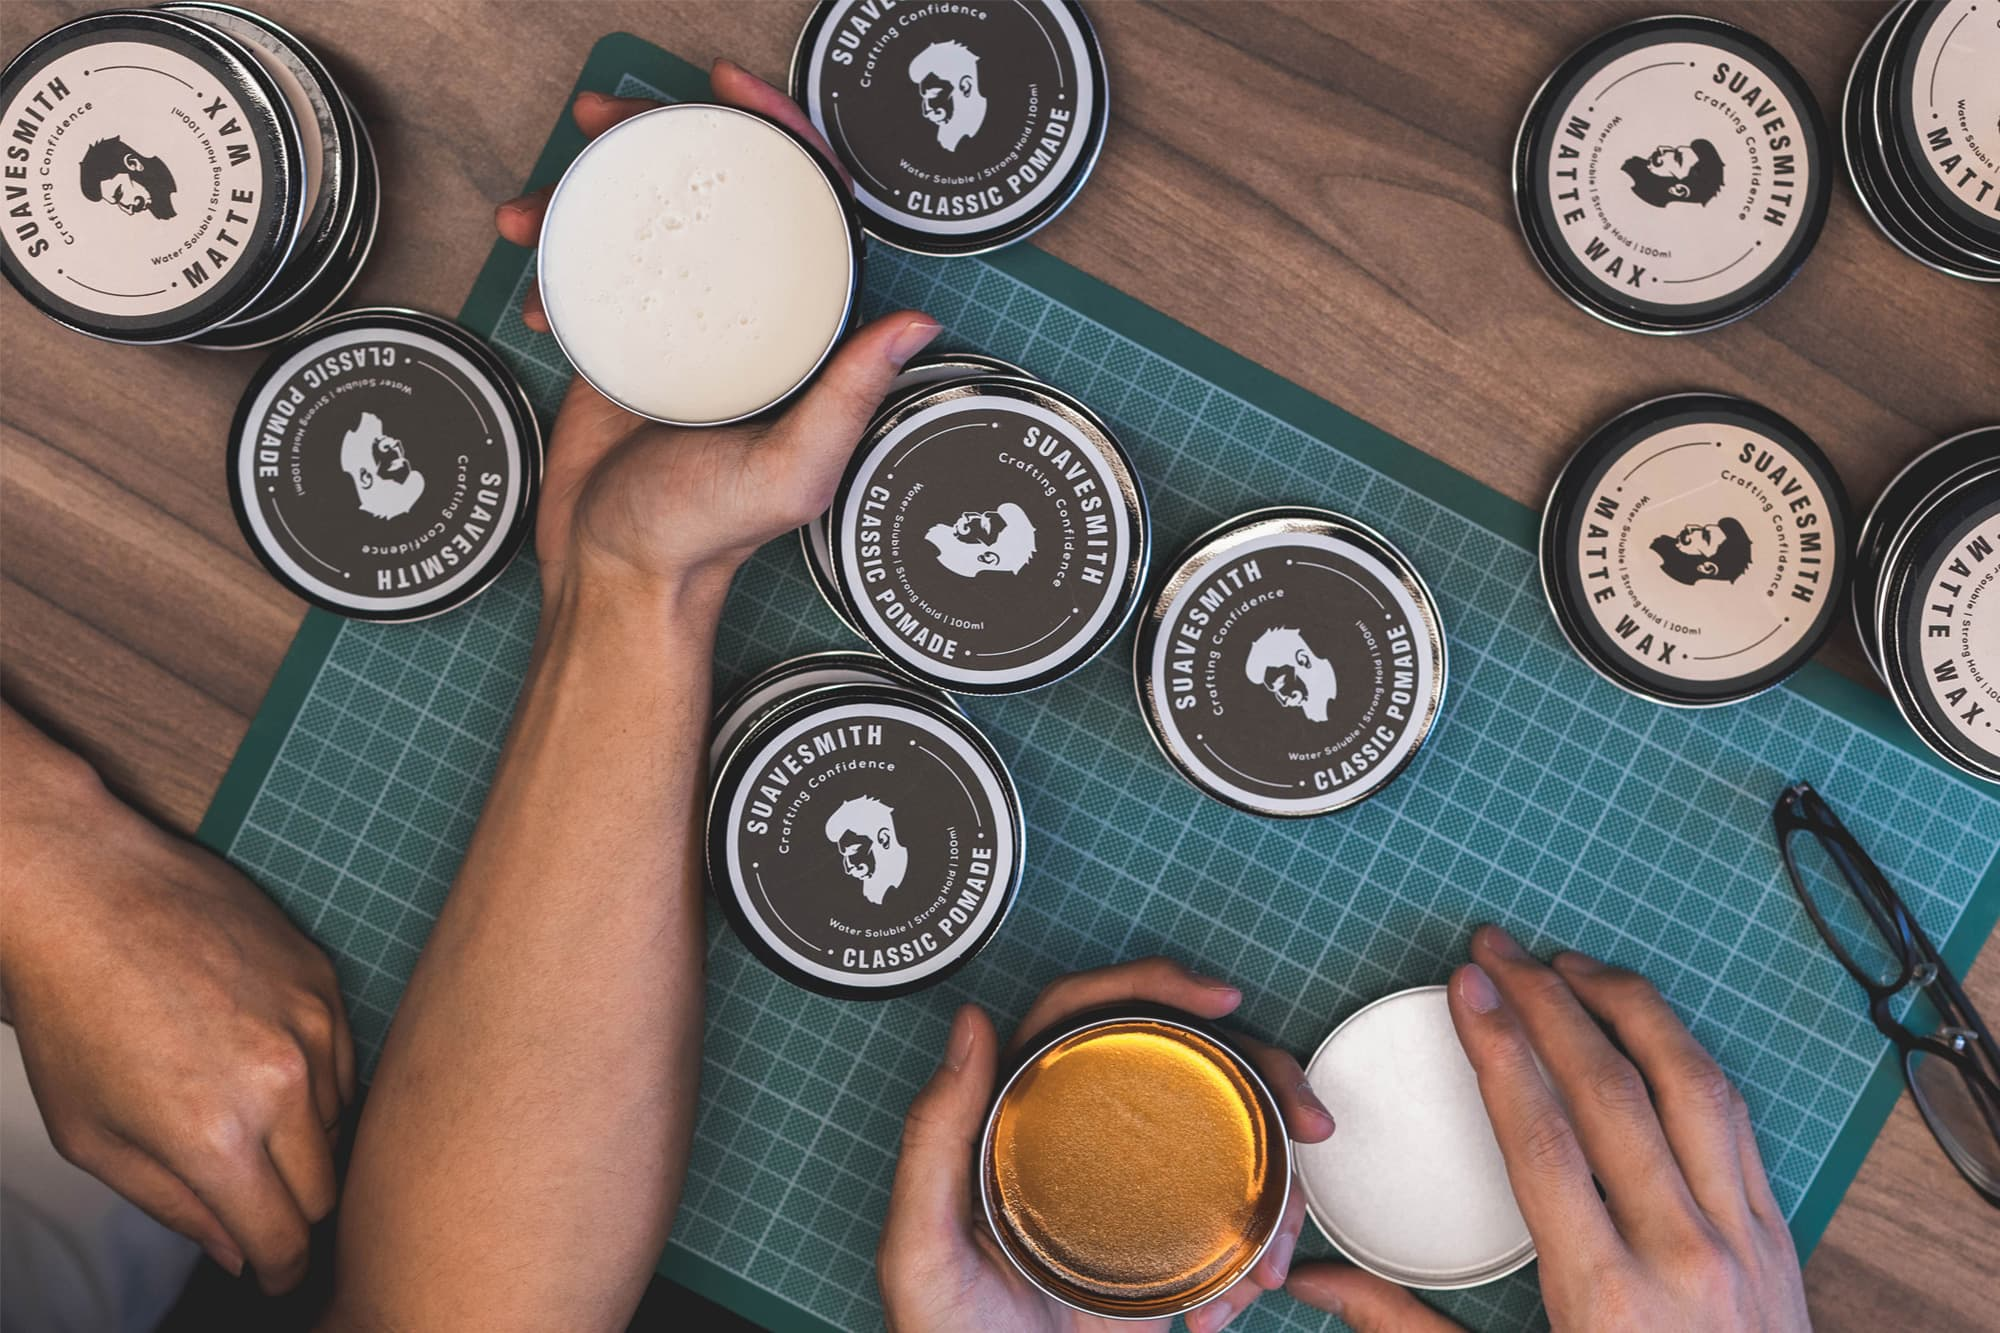 Talk shop: Local grooming brand Suavesmith on crafting confidence and community